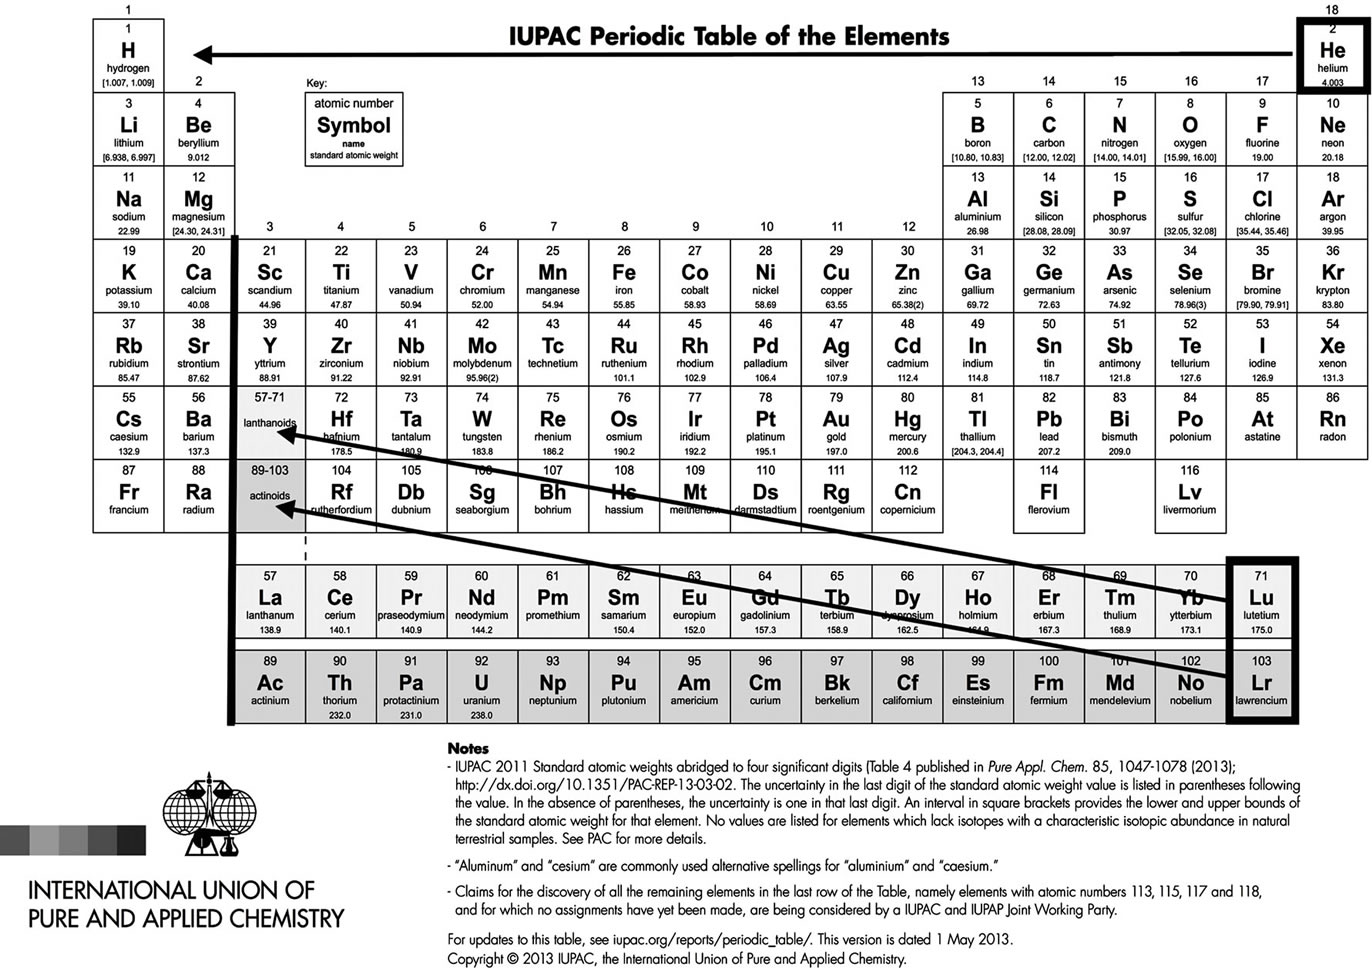 Iupac periodic table quantum mechanics consistent figure 1 iupac official table with suggested corrections one can see a vacant place at the right of h contradicting the heading periodic table he gamestrikefo Images